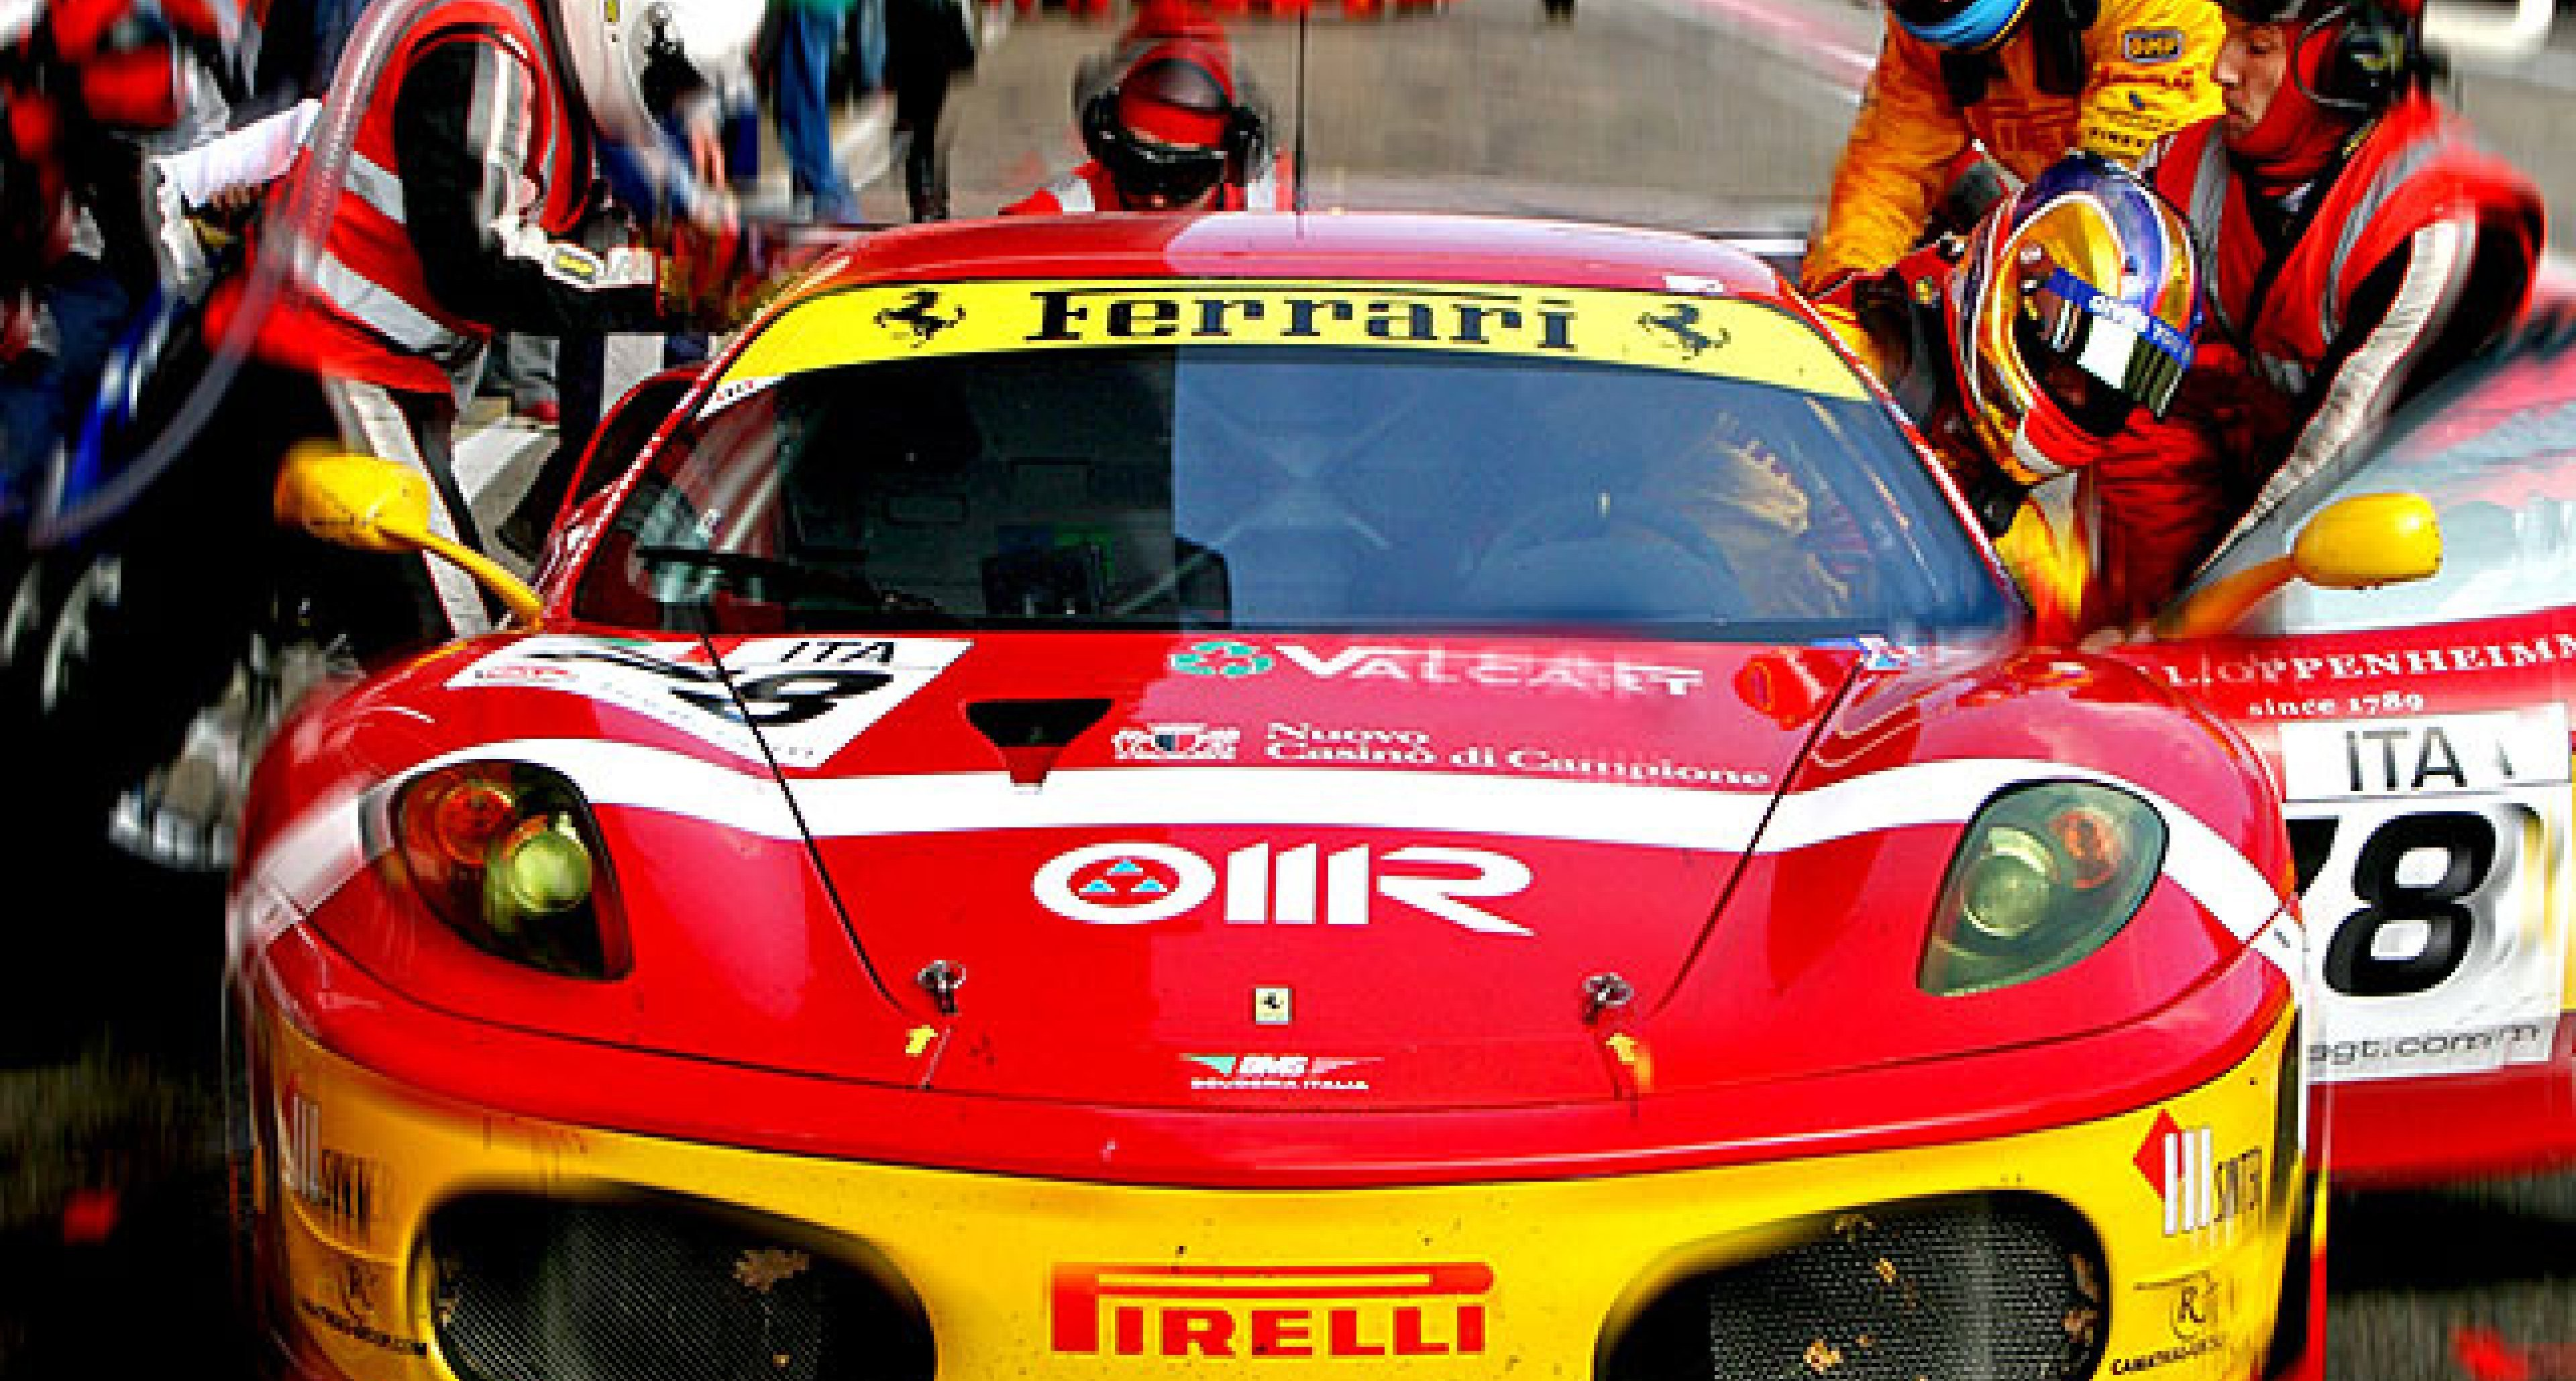 Exhibition of Ferrari Photography and Art